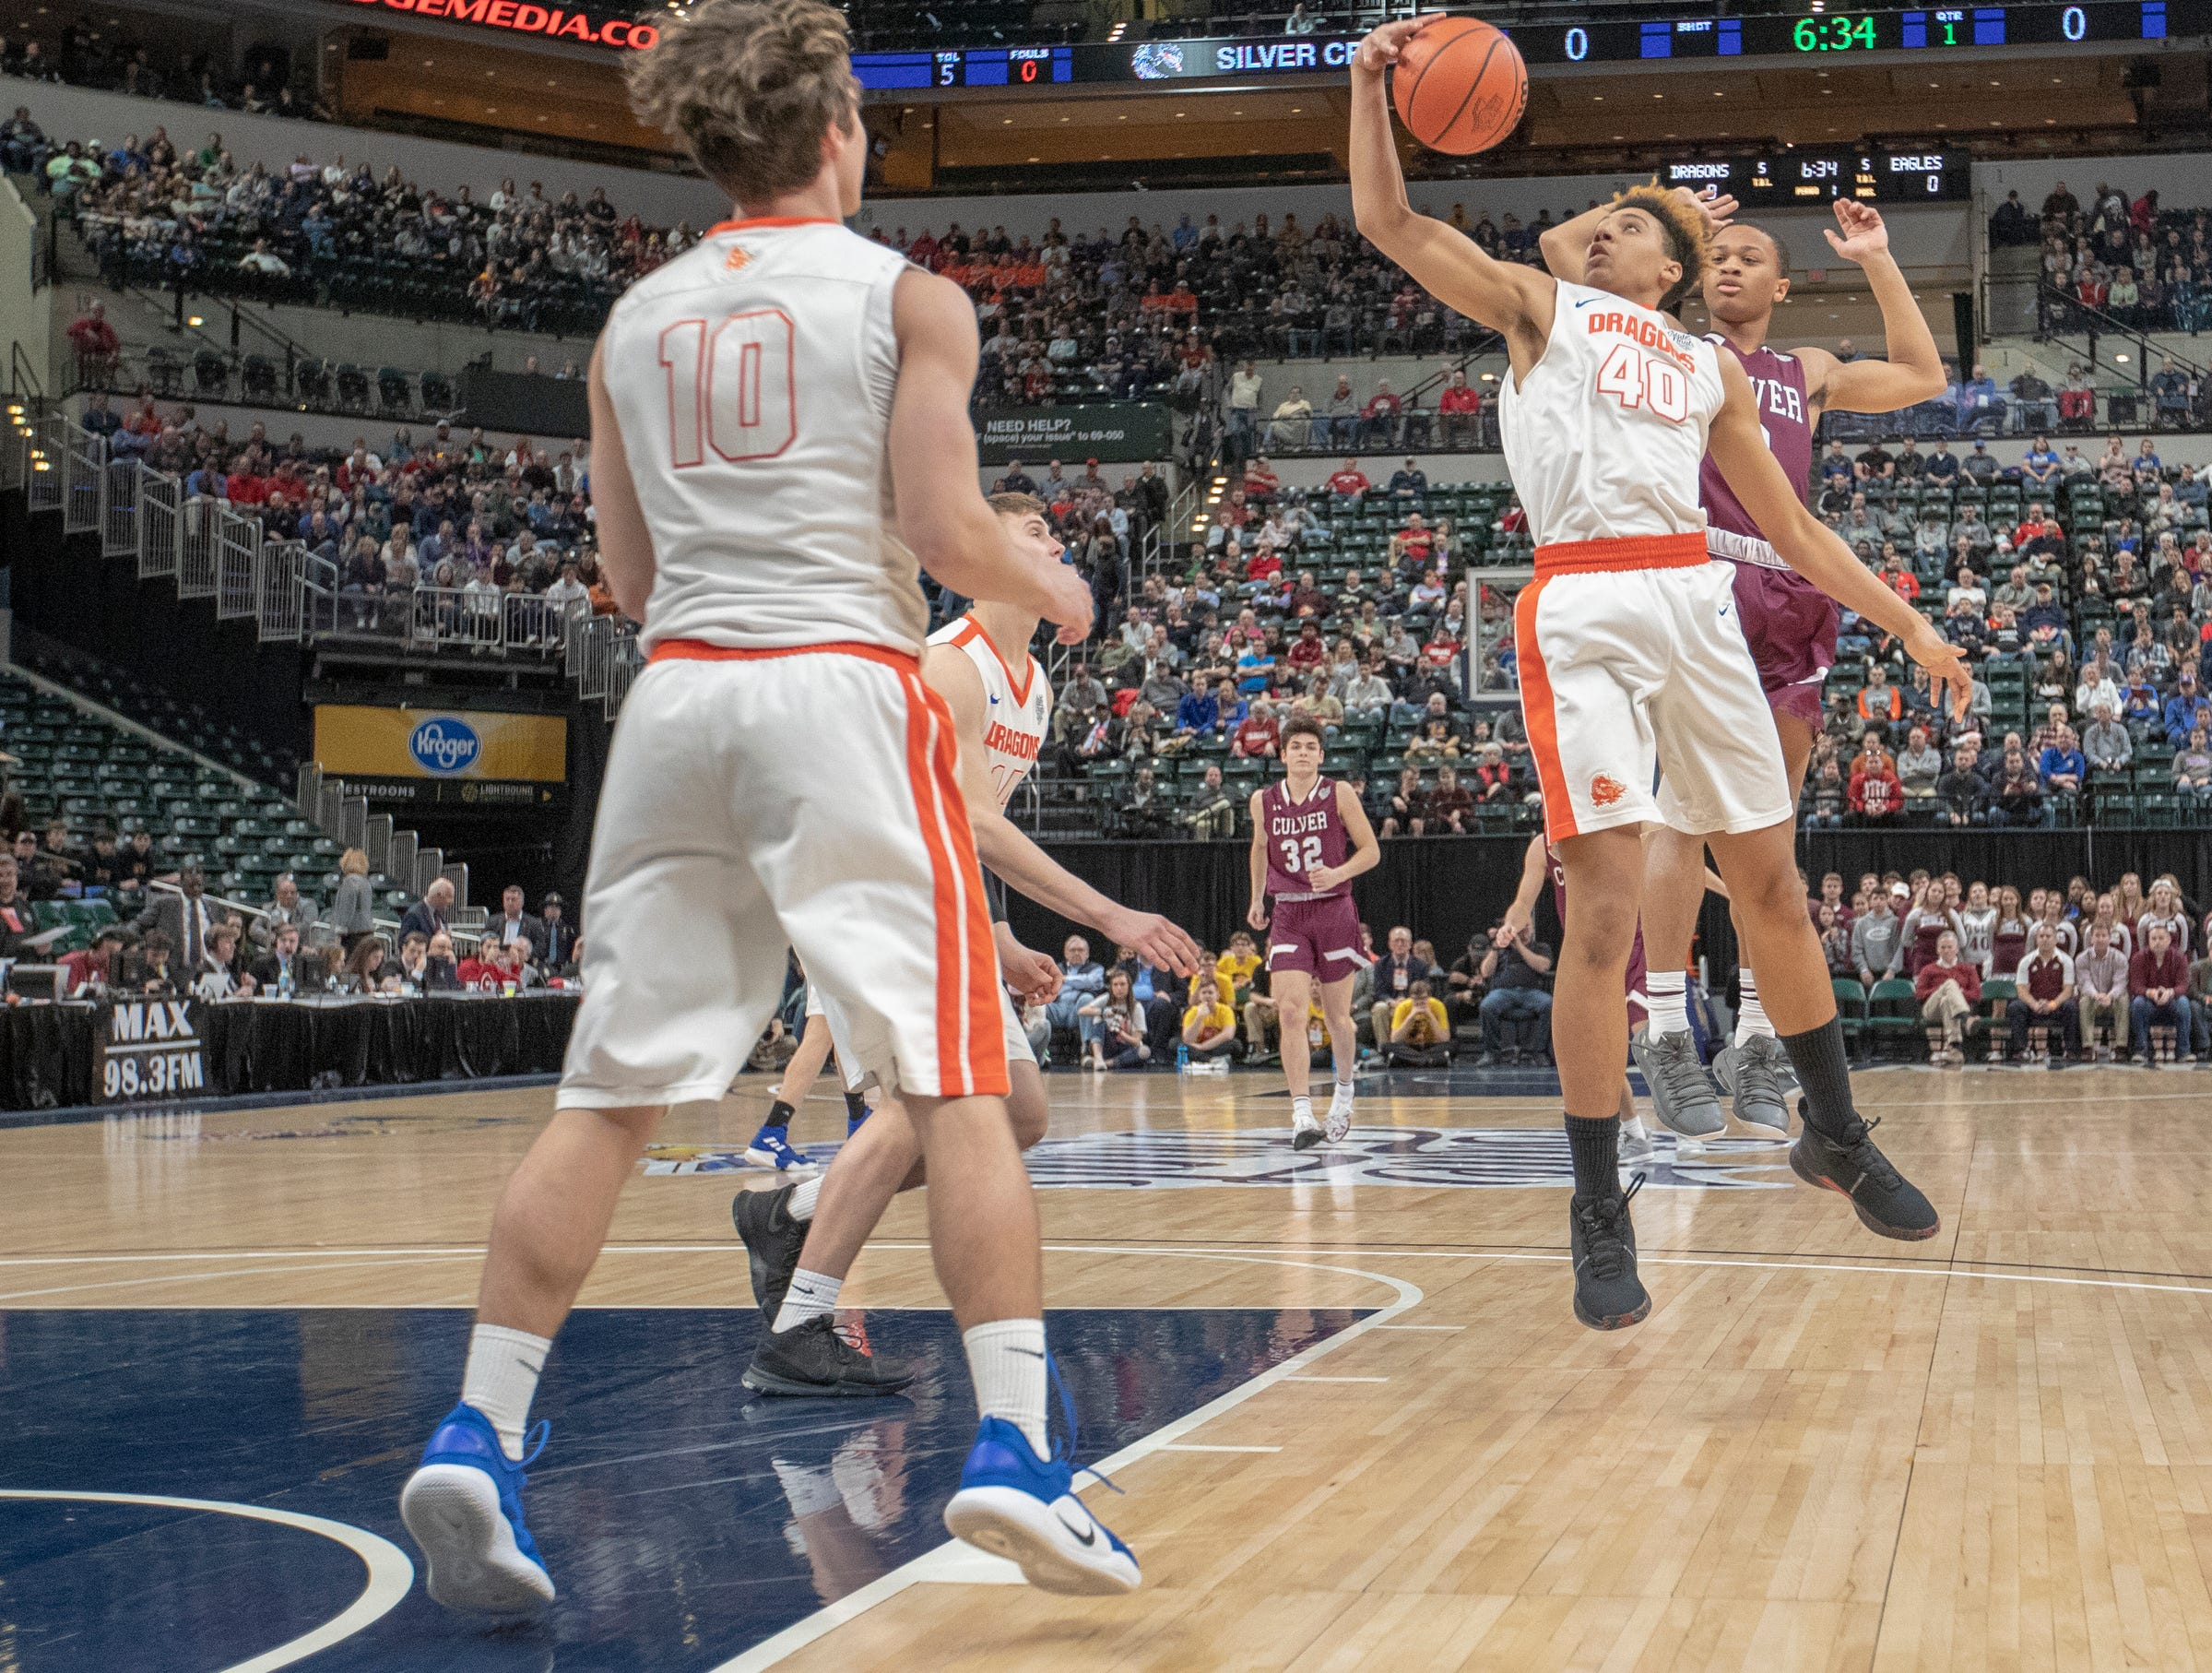 Trey Kaufman of Silver Creek High School pulls down a rebound during first half action, Culver Academies vs. Silver Creek Dragons in the Class 3S Boys Basketball State Final, Bankers Life Fieldhouse, Indianapolis, Saturday, March 23, 2019.